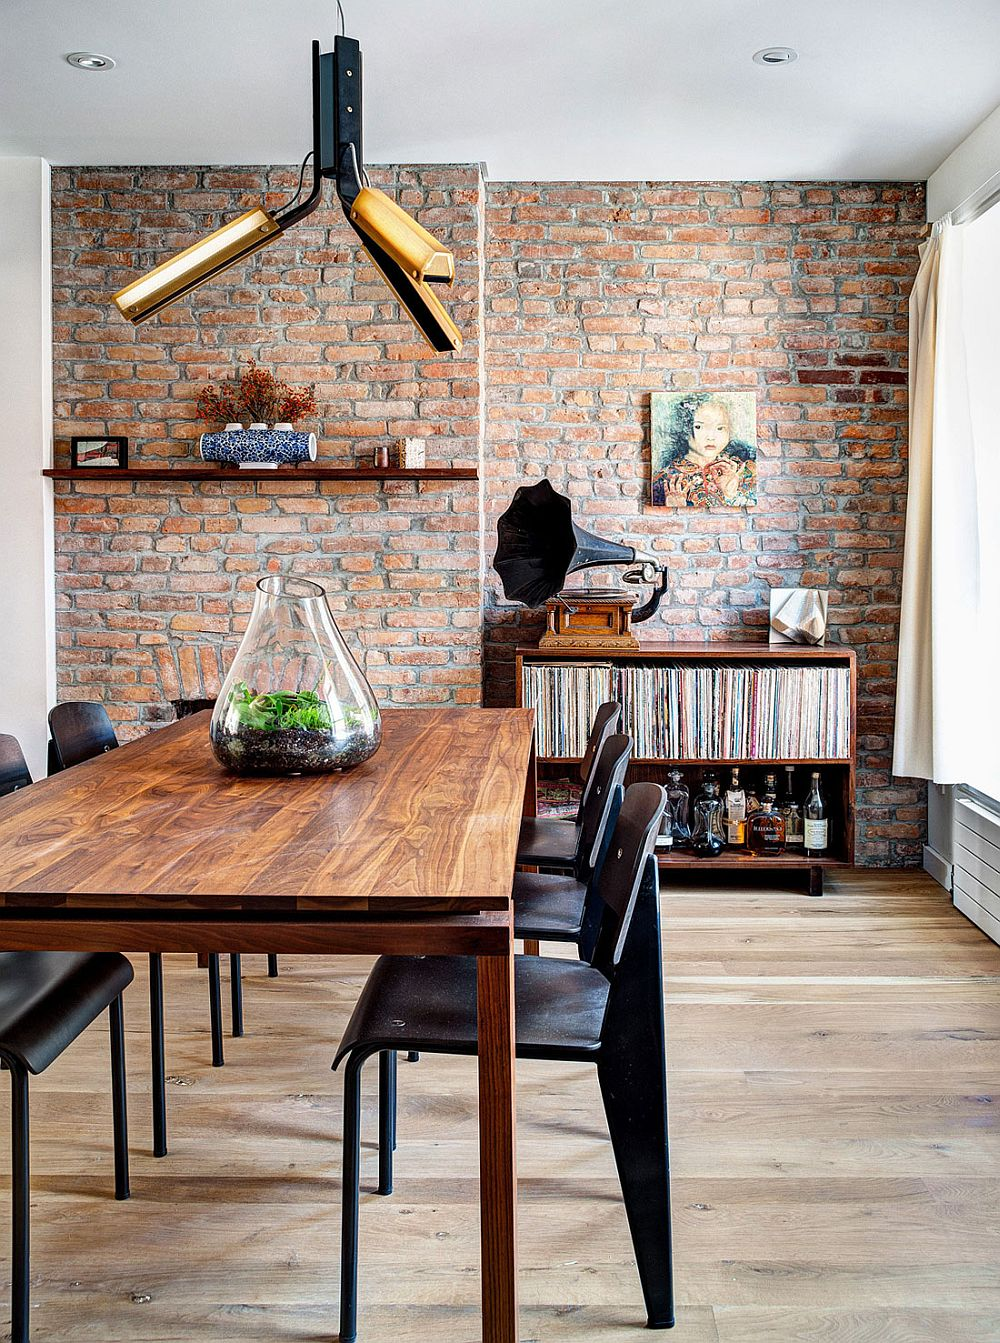 View In Gallery Industrail Elements Shape The Renovated Dining Space With Brick Walls